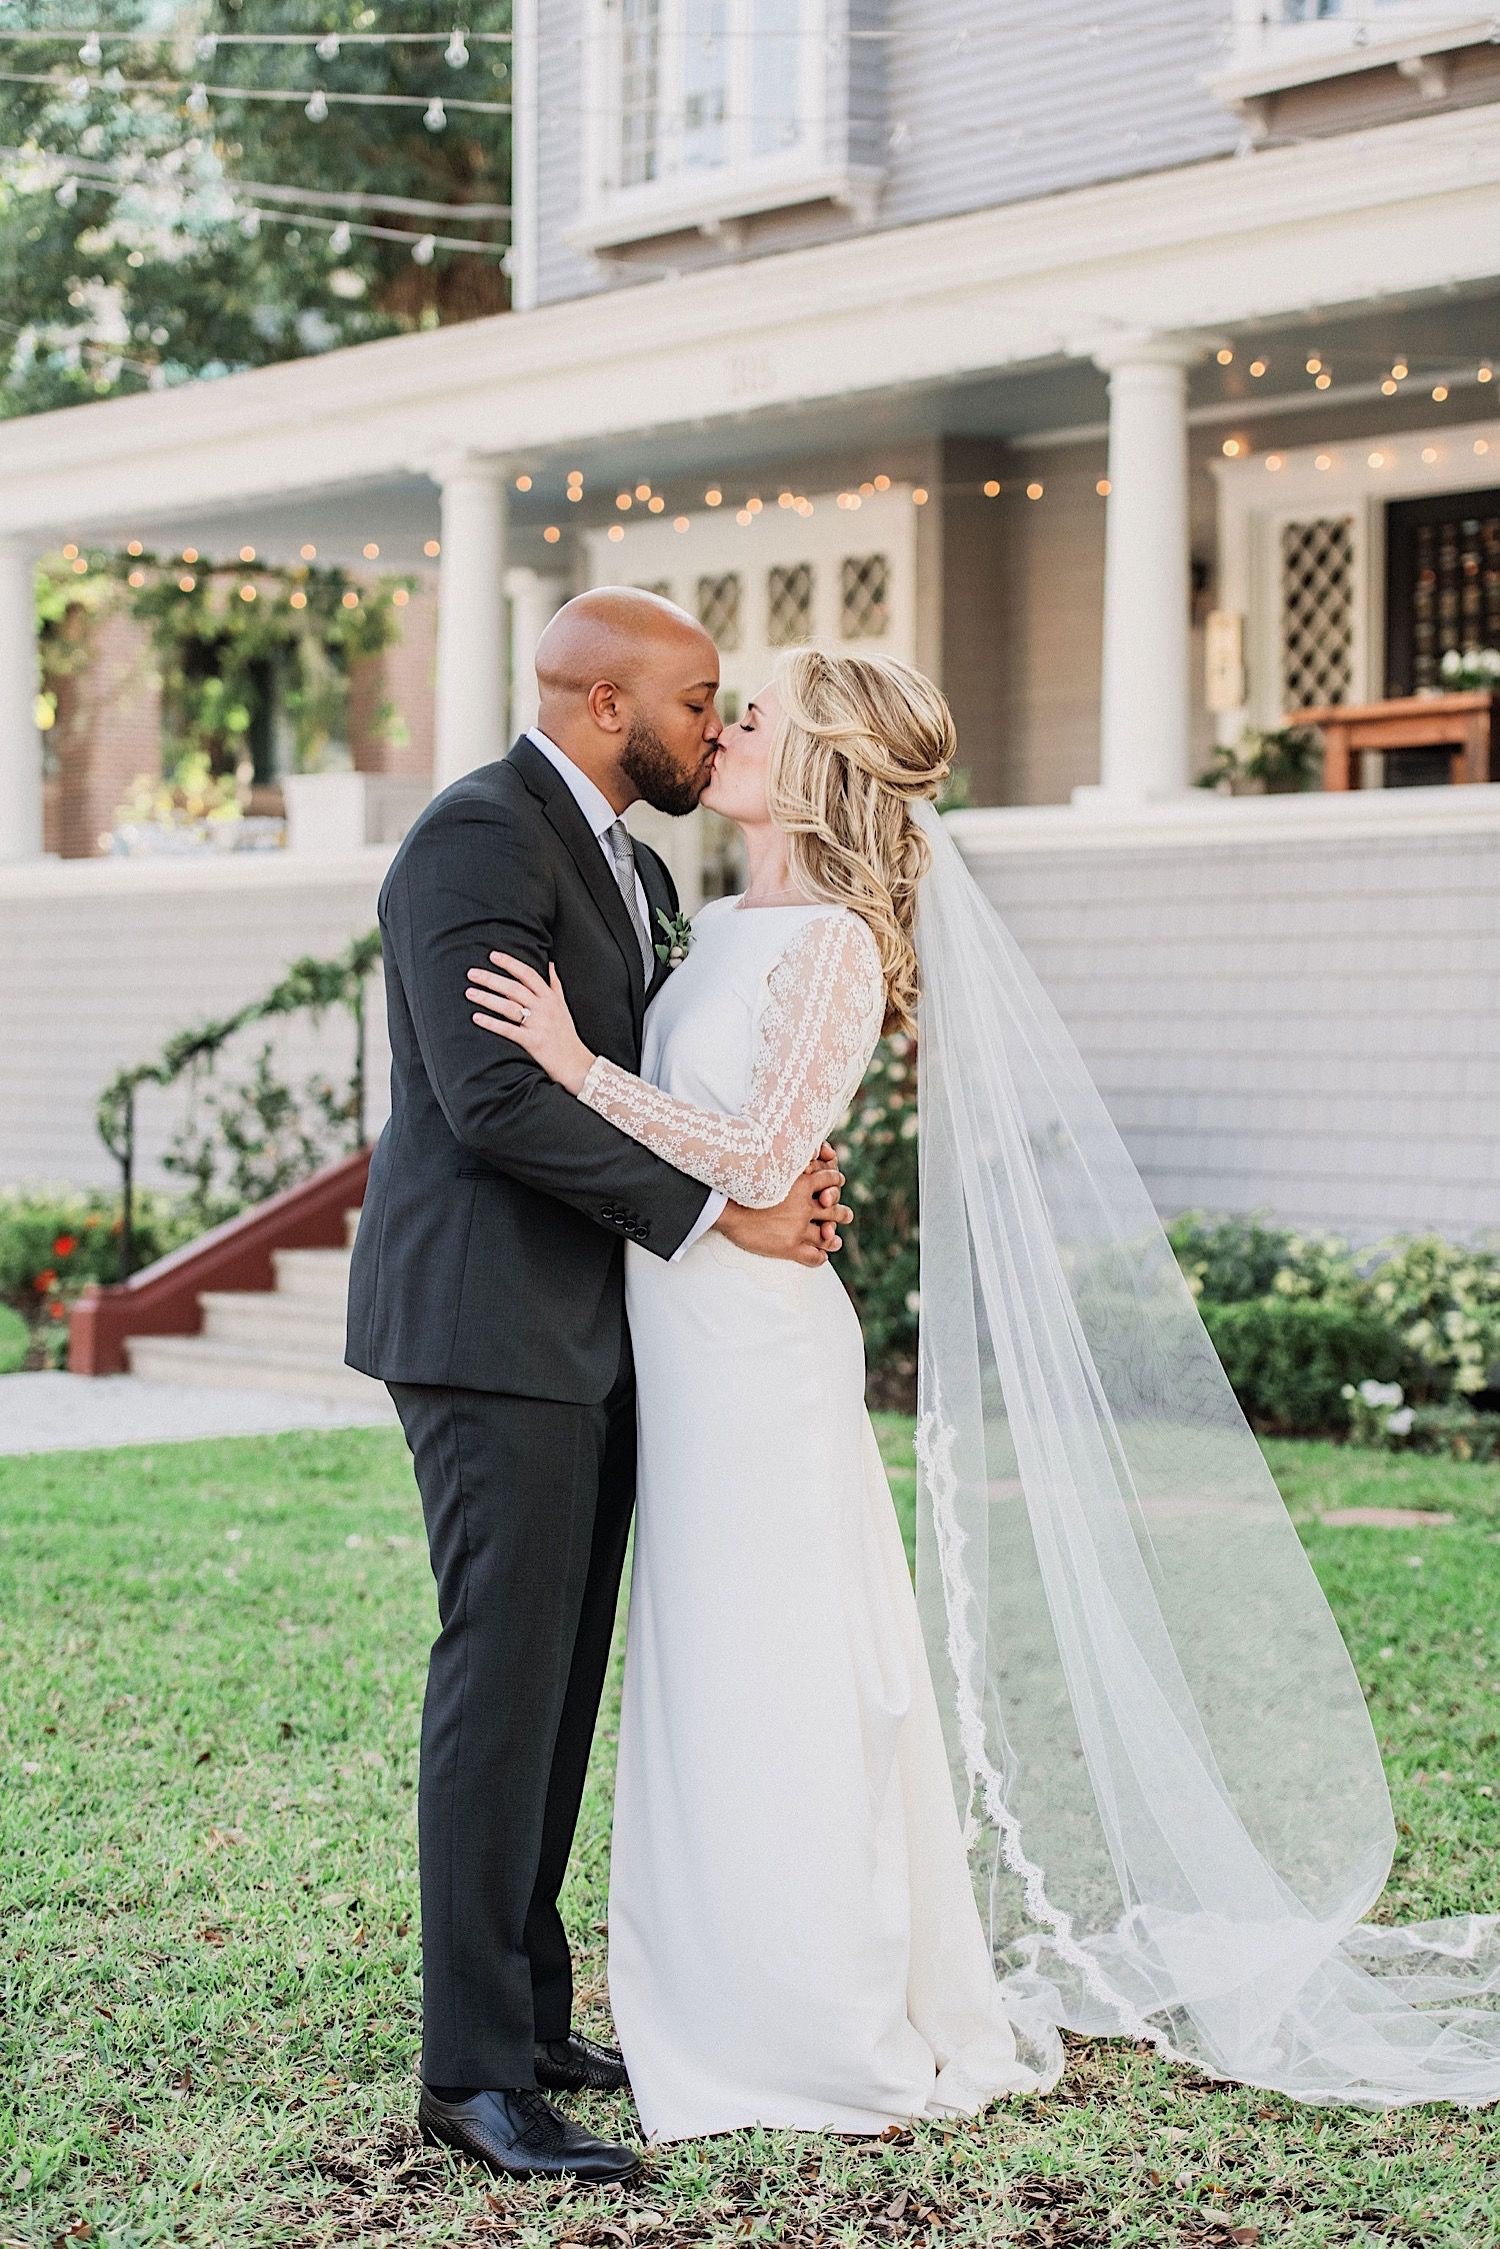 brise and groom kissing in front of the Orlo at their wedding